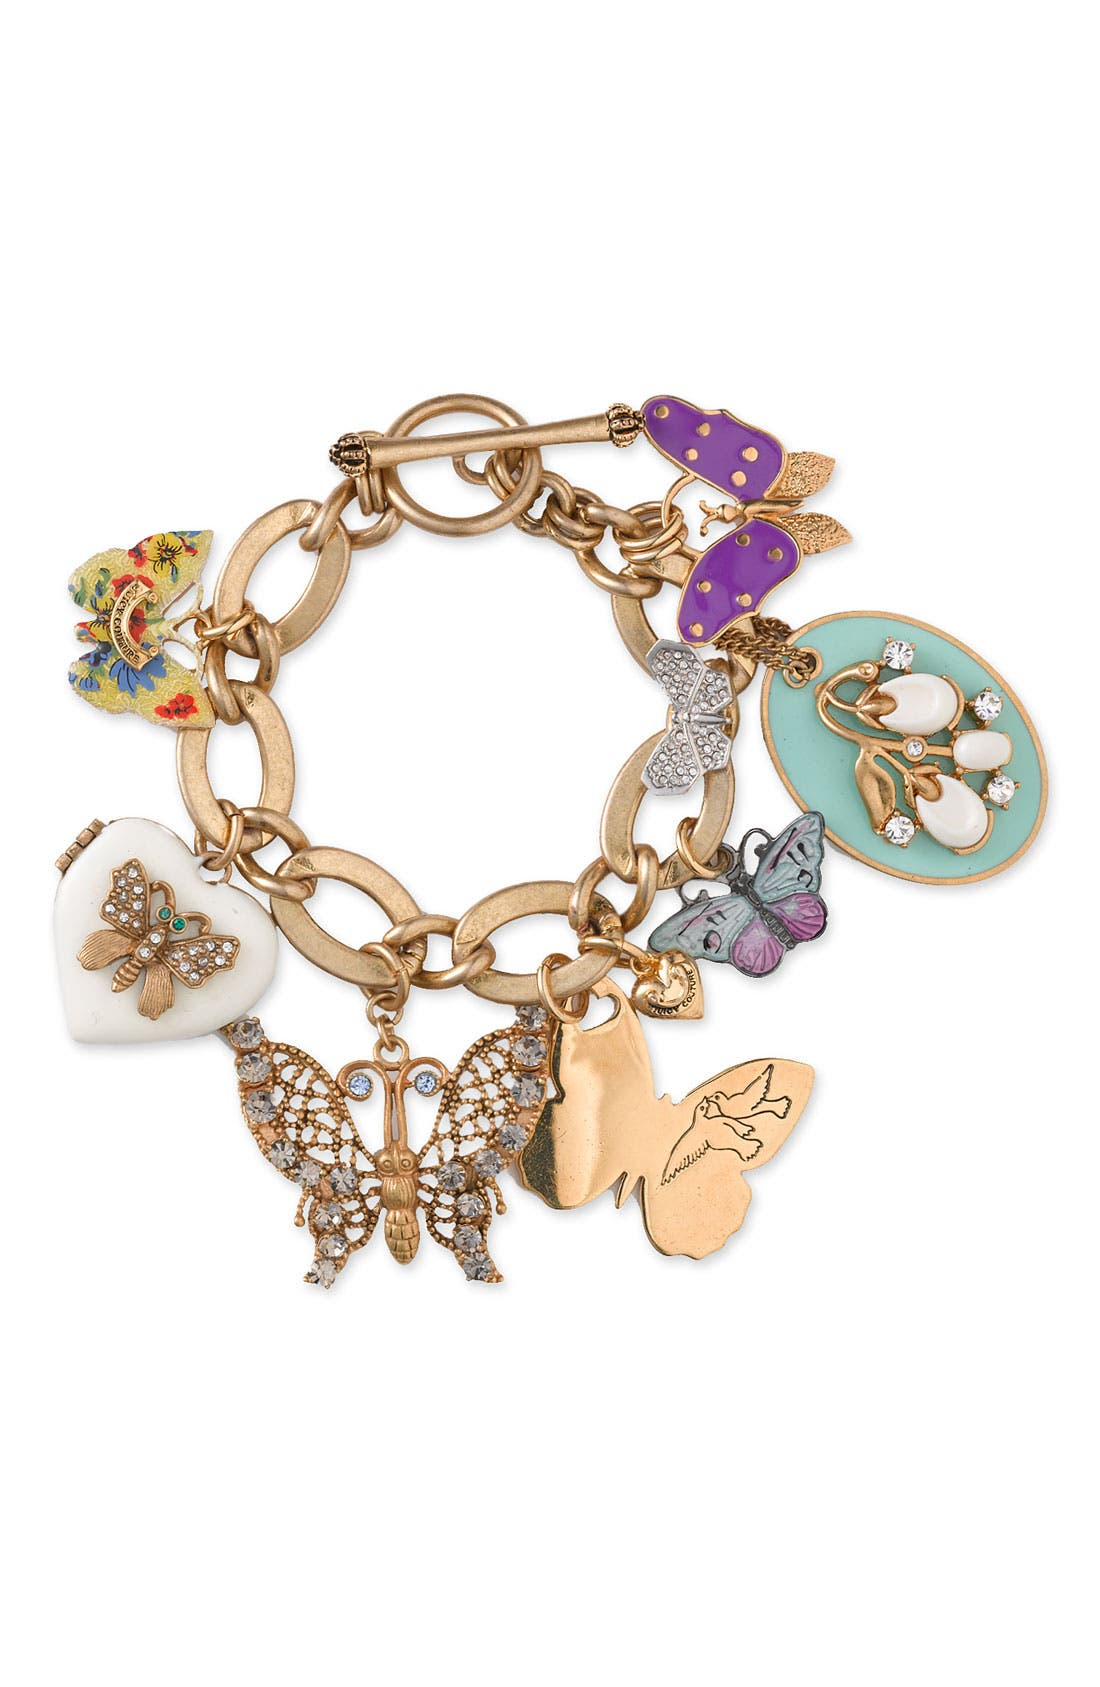 Alternate Image 1 Selected - Juicy Couture 'Flights of Fancy' Butterfly Charm Bracelet